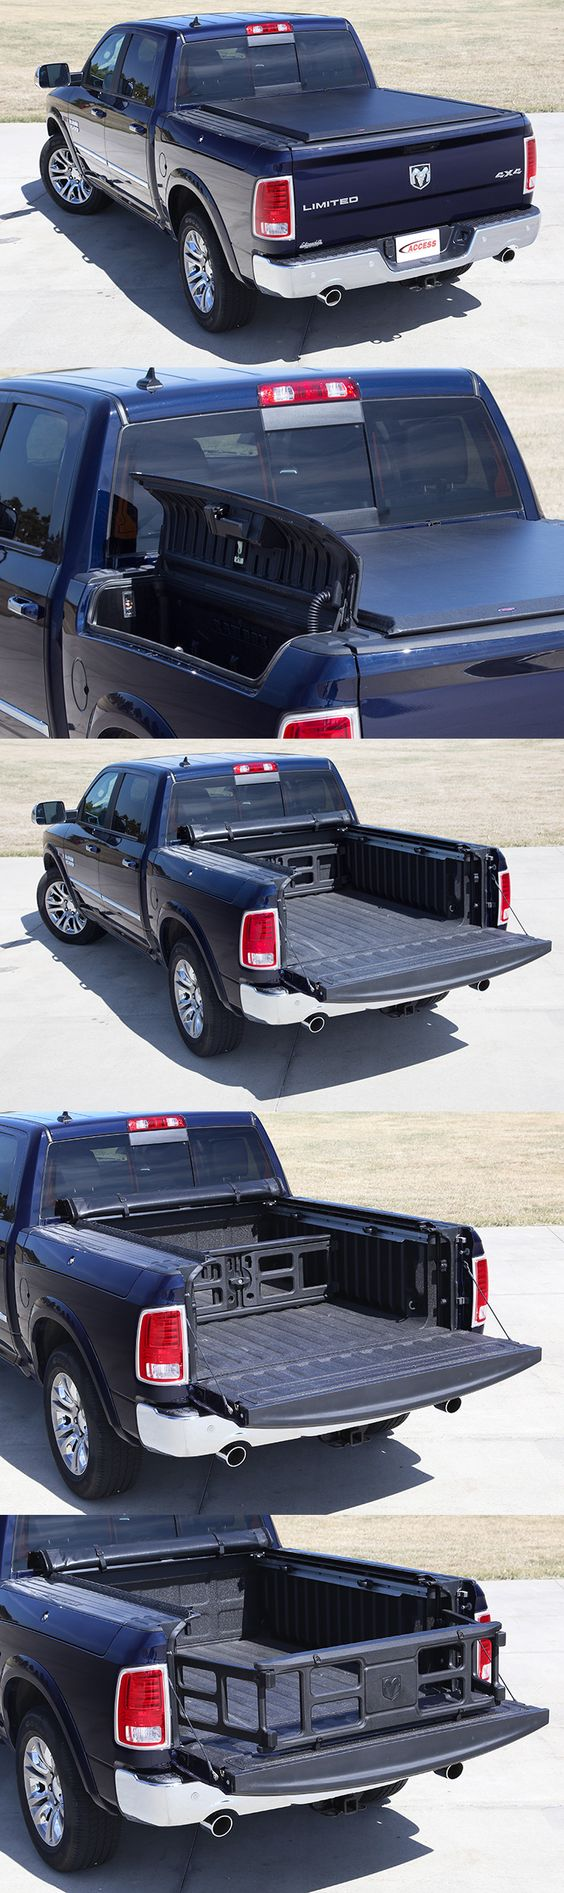 All purpose truck rail with bed truck cover and a small